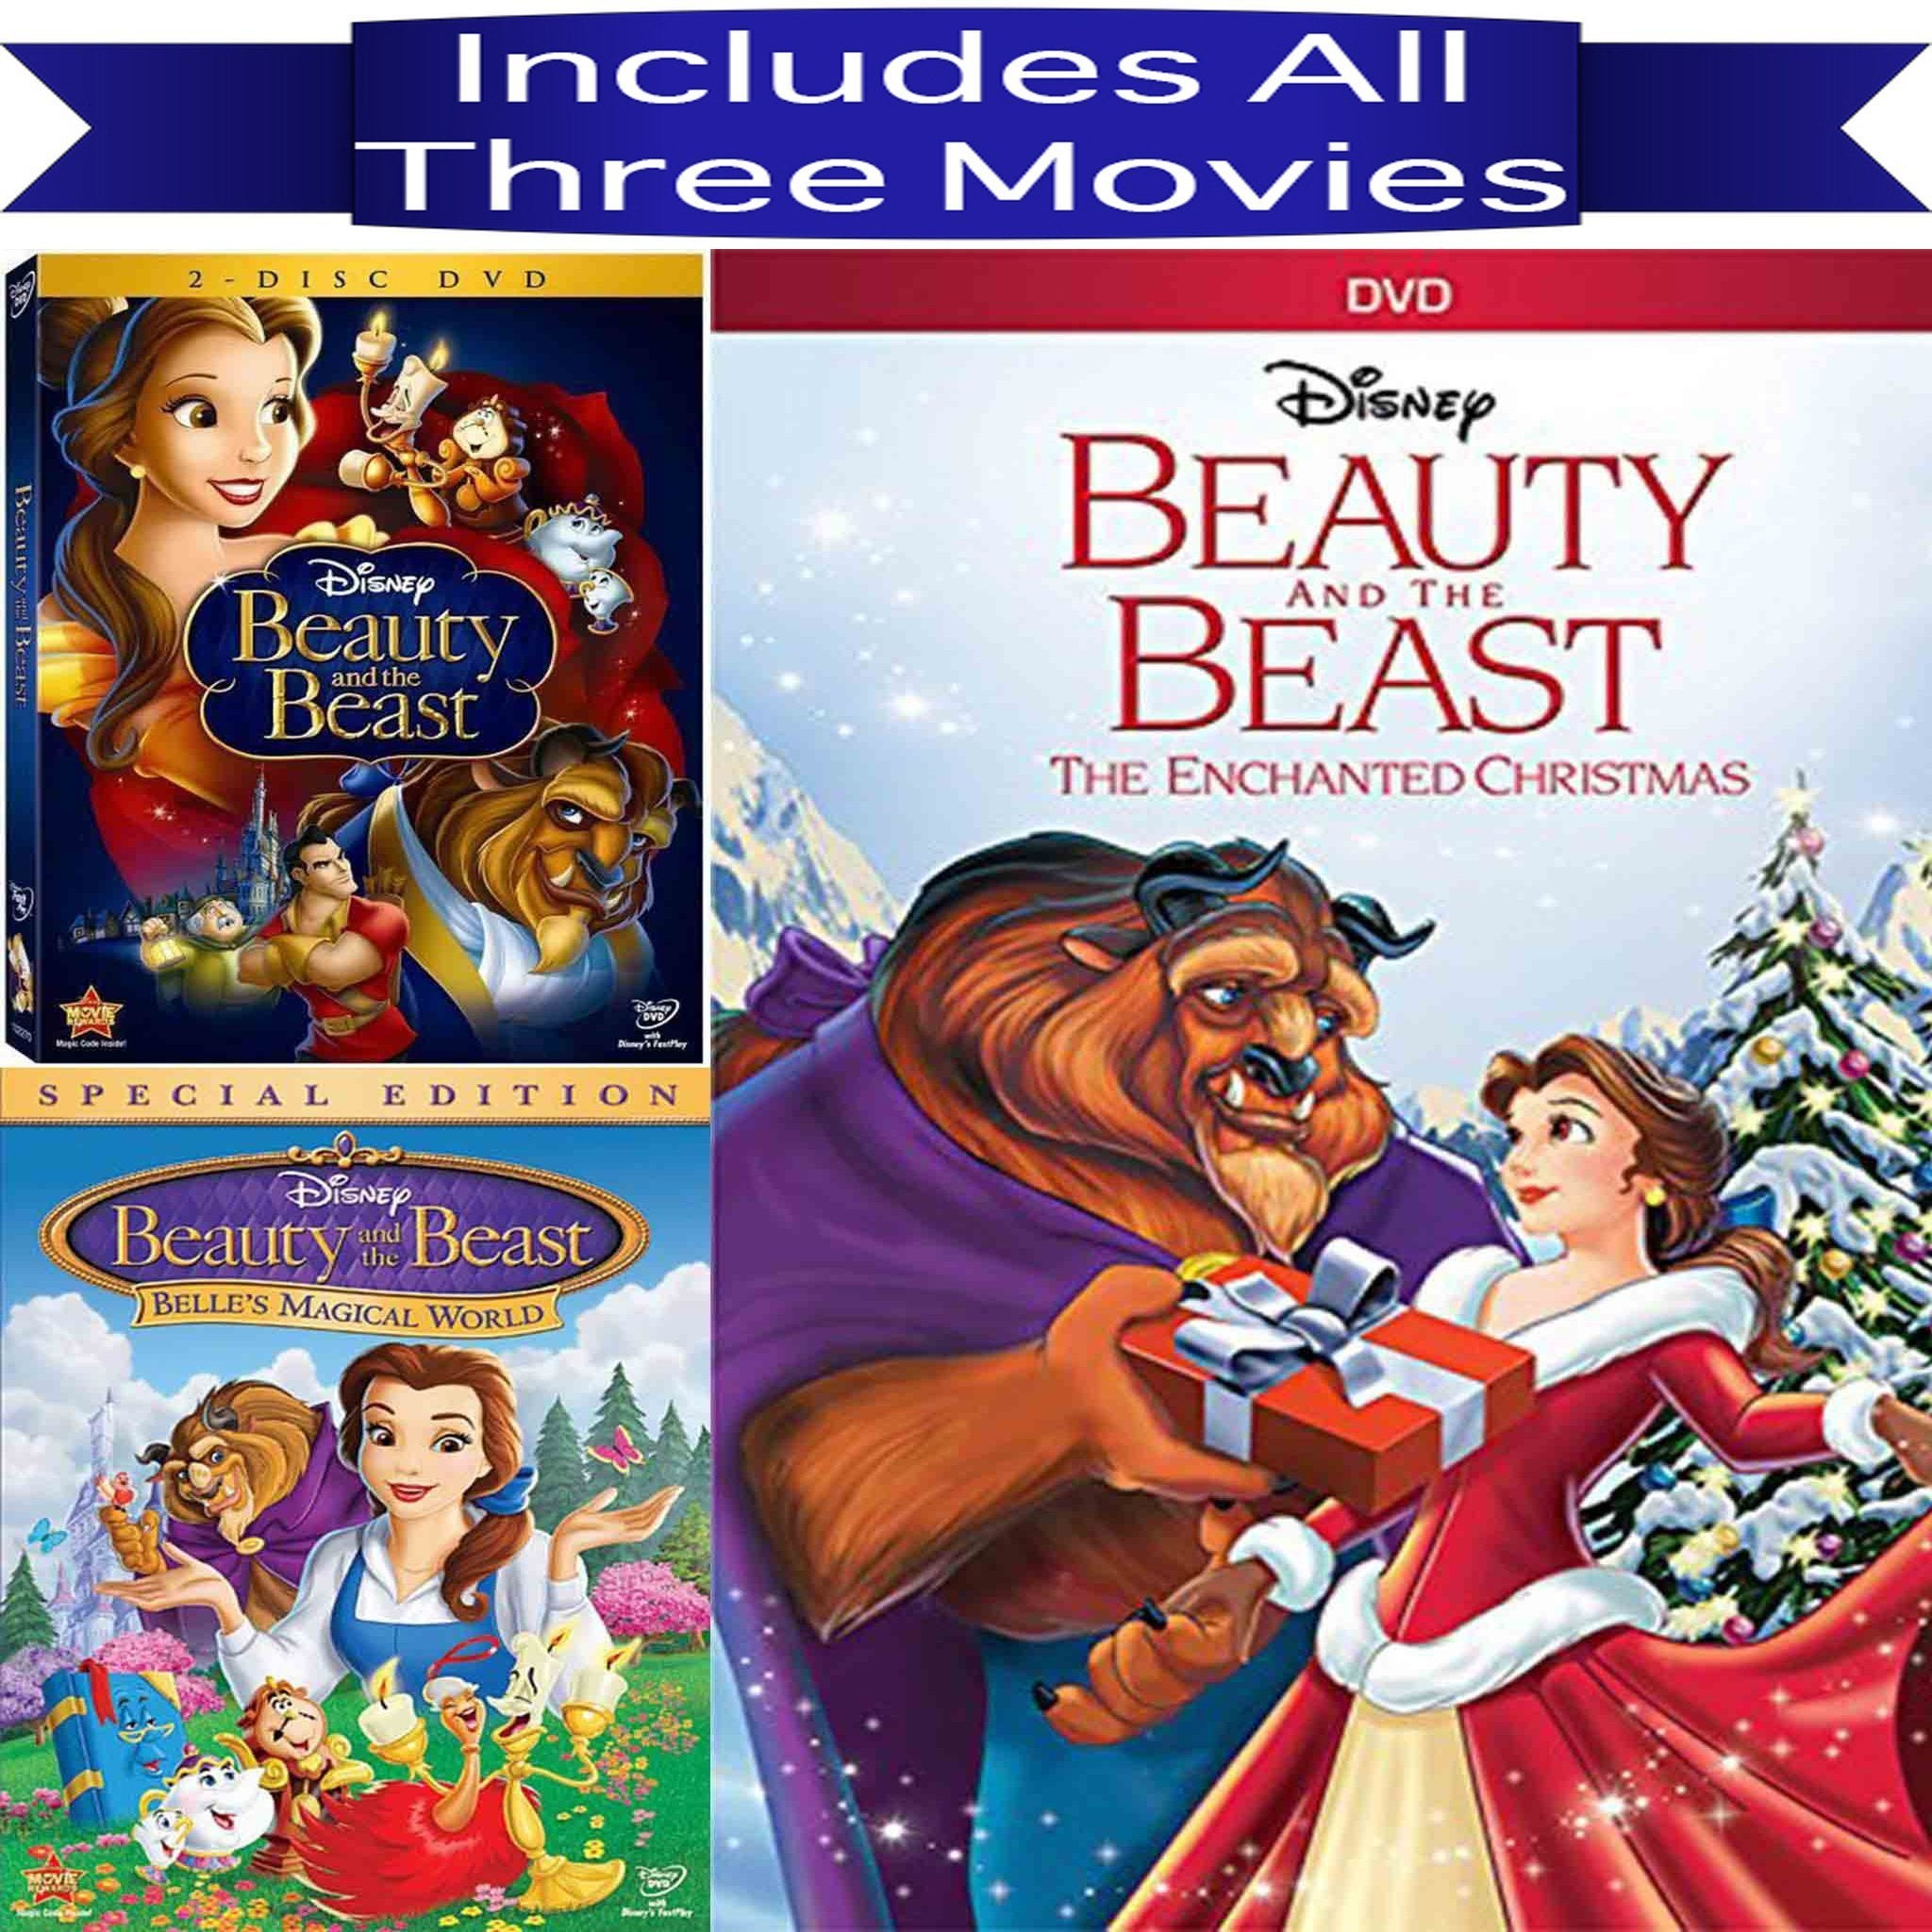 Walt Disney's Beauty & The Beast DVD Set 3 Movie Collection Walt Disney DVDs & Blu-ray Discs > DVDs